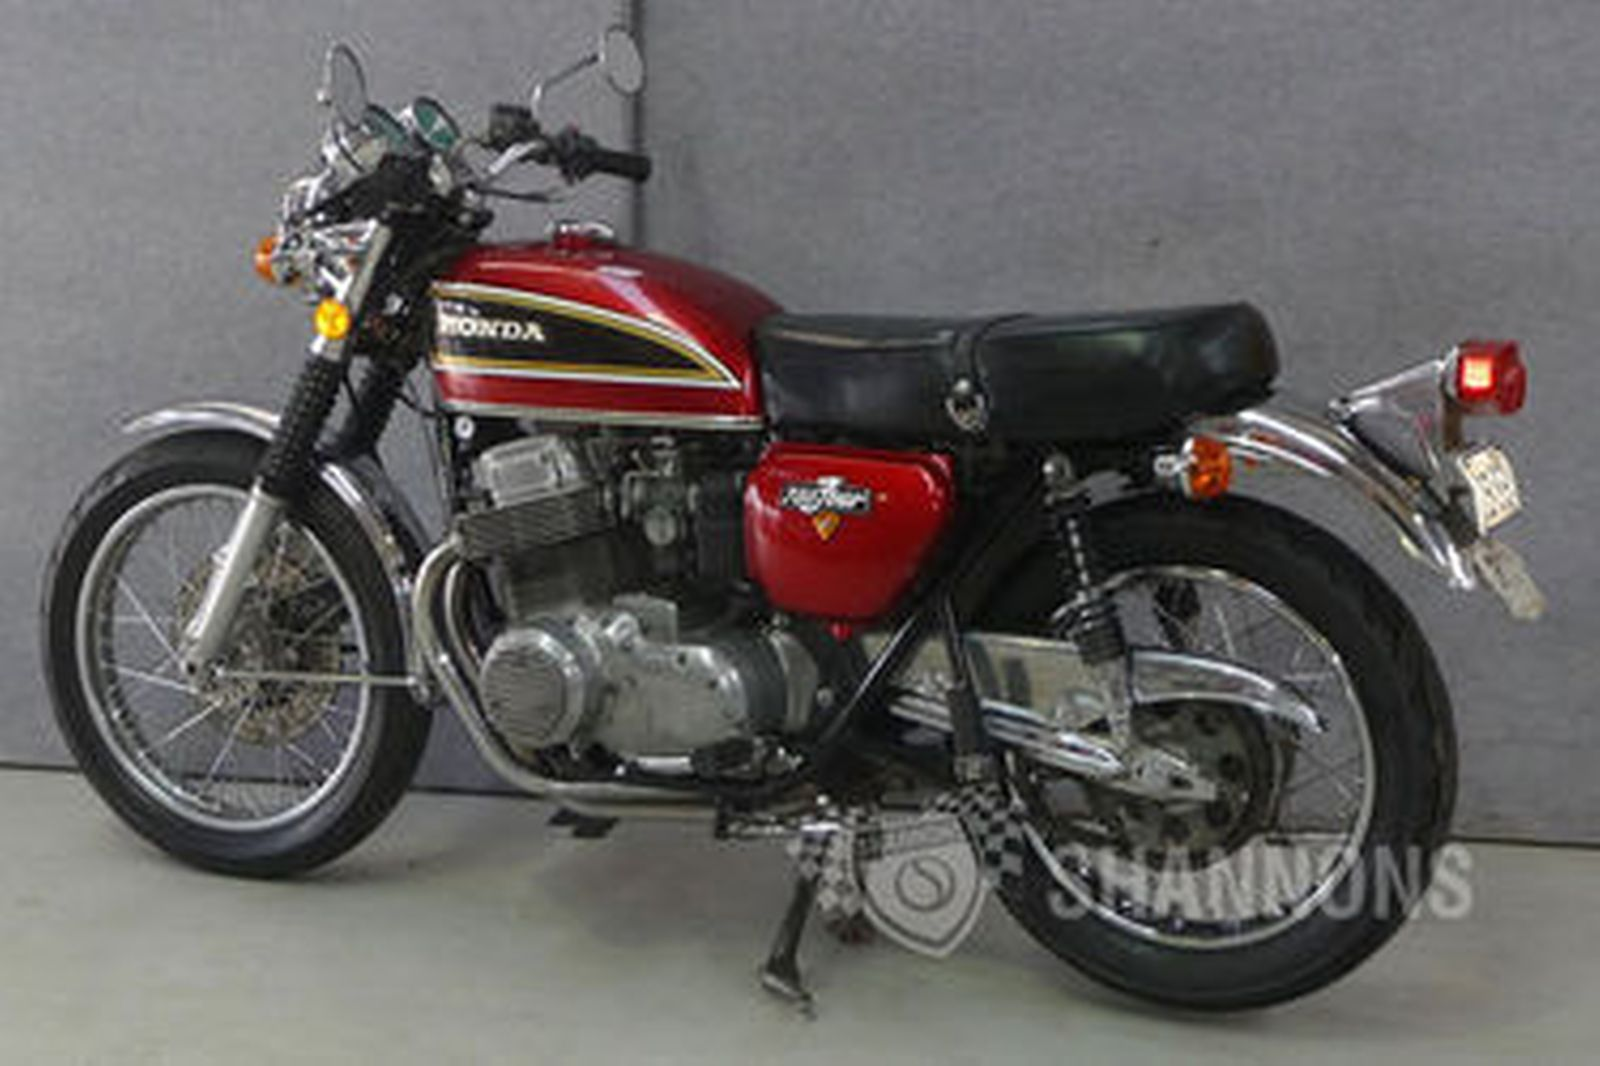 sold honda cb750 4 k2 motorcycle auctions lot 22 shannons. Black Bedroom Furniture Sets. Home Design Ideas